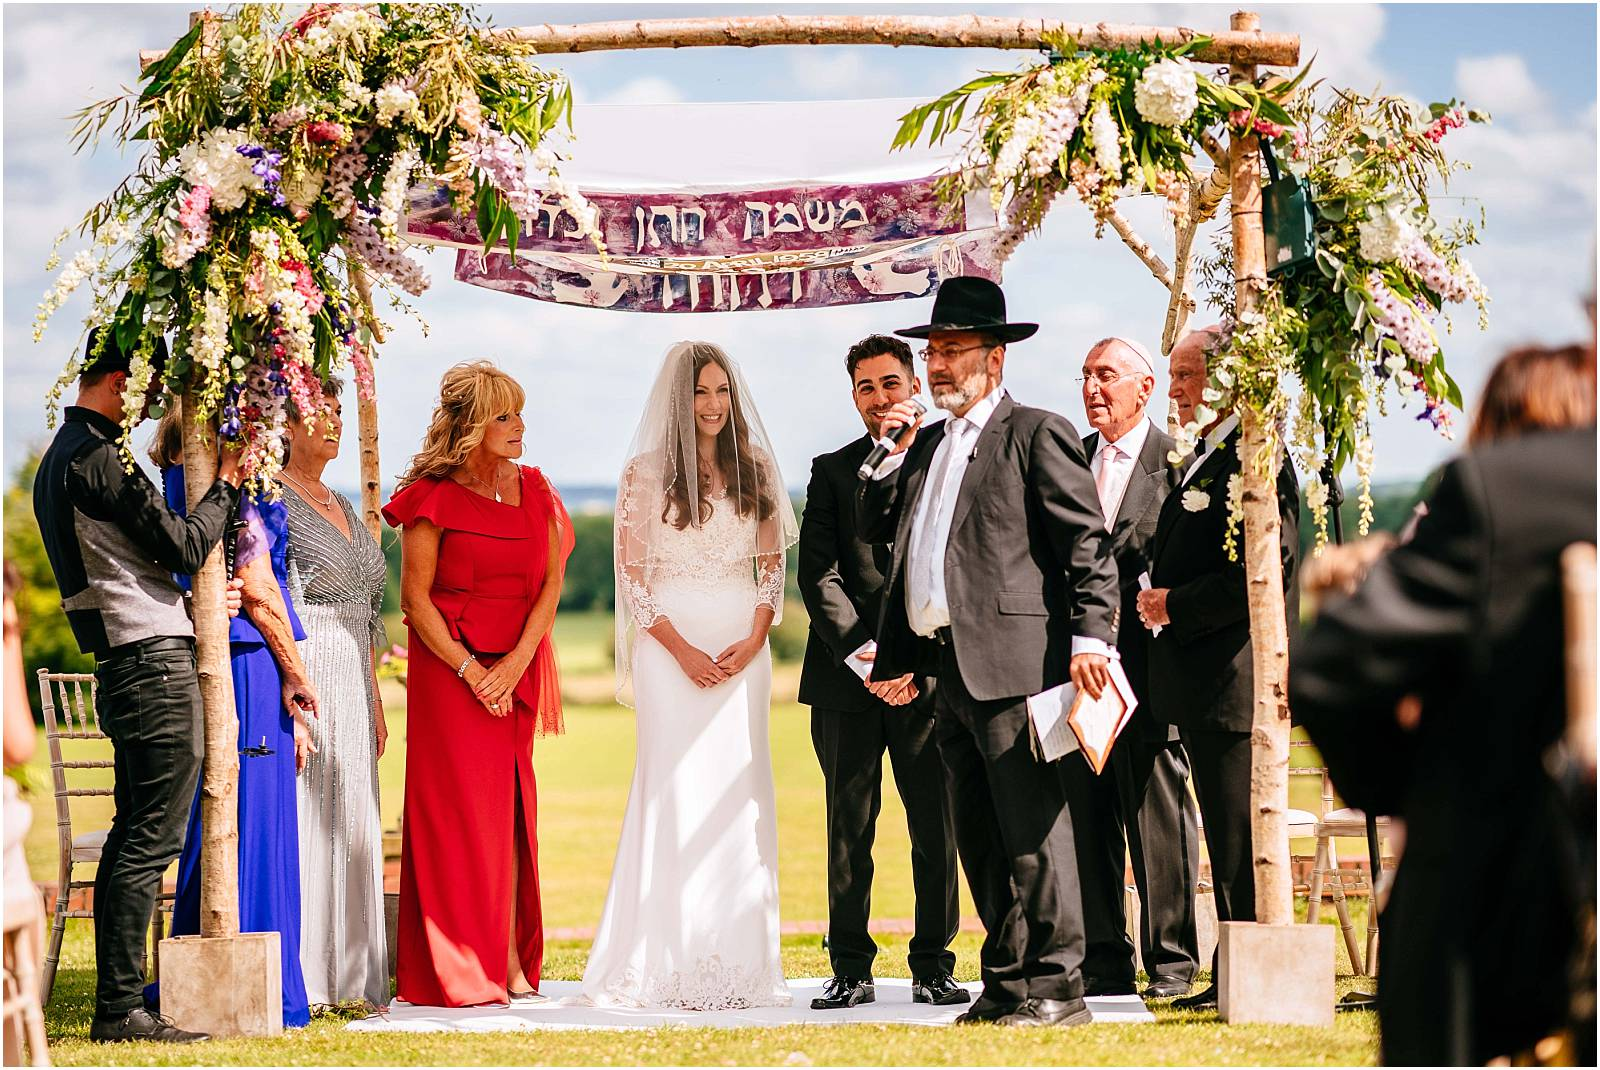 getting married under huppah